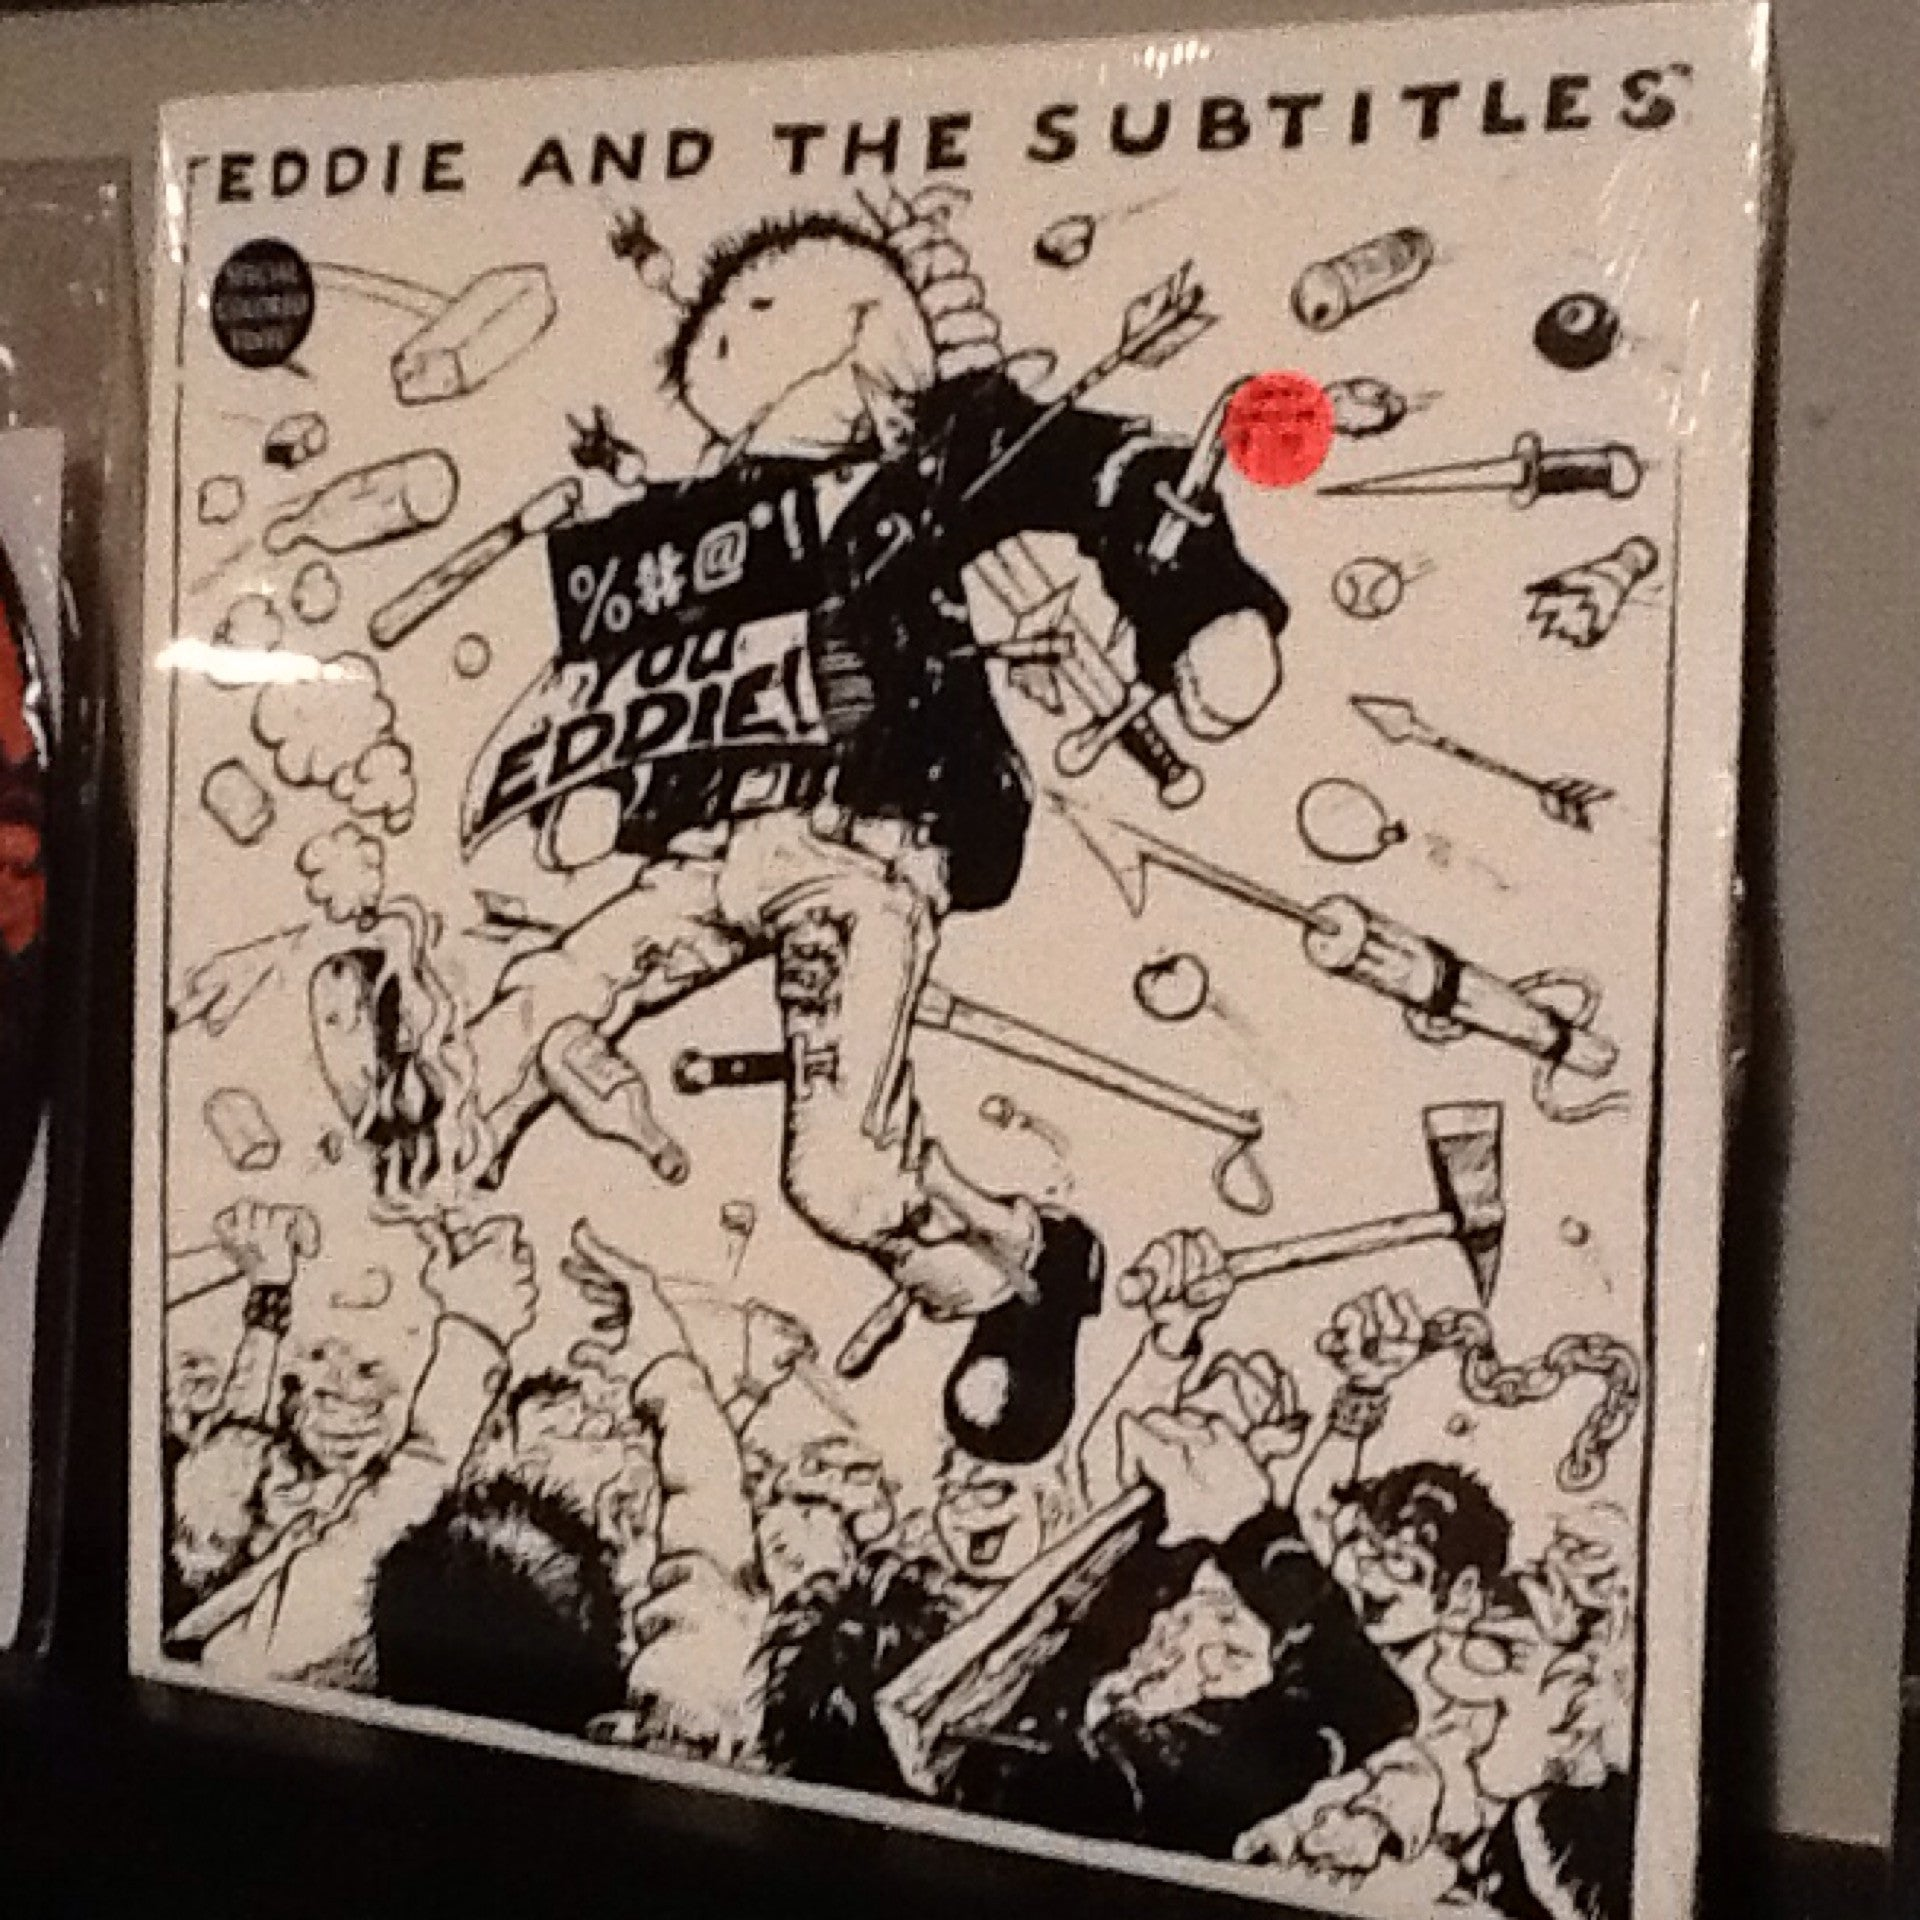 Eddie And The Subtitles - Fuck You Eddie LP - Colored Vinyl